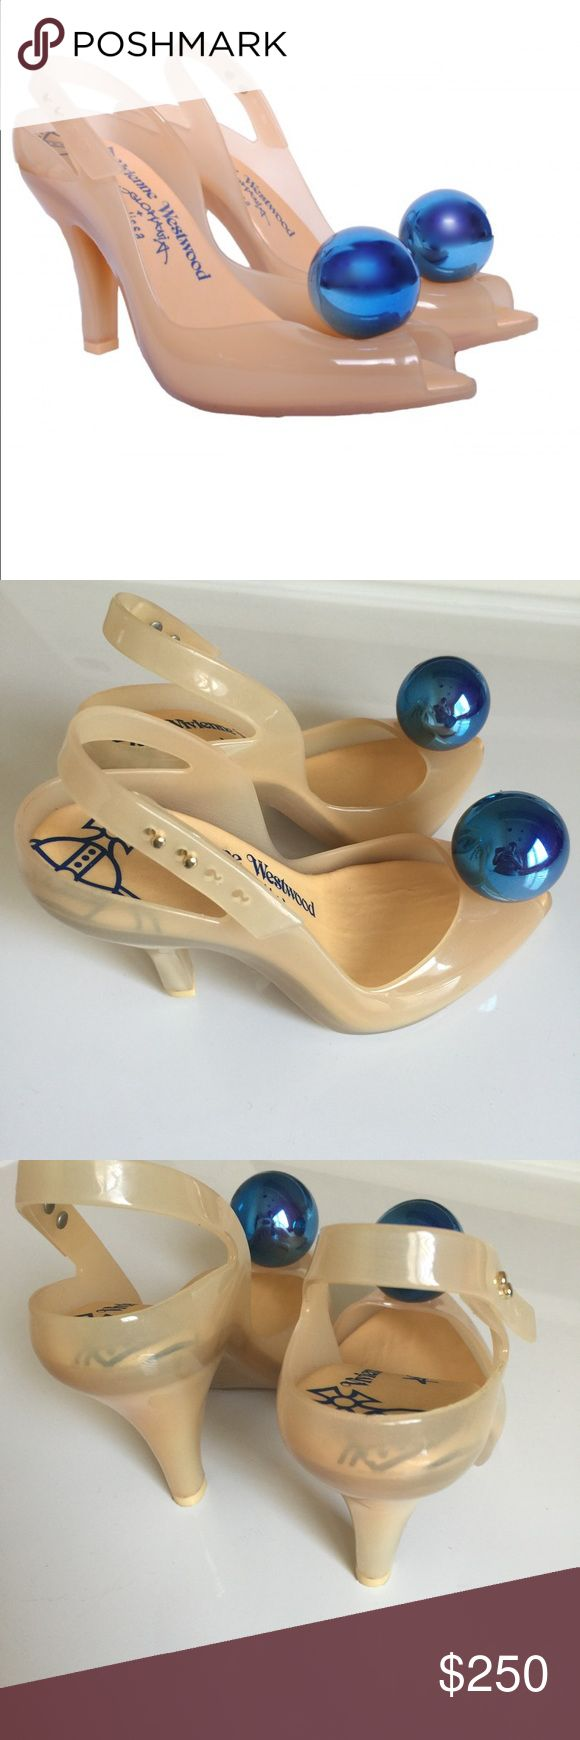 Vivienne Westwood anglomania melissas That perfect something blue Vivienne Westwood anglomania lady dragon Melissa like new (sold out) HTF Vivienne Westwood Shoes Heels